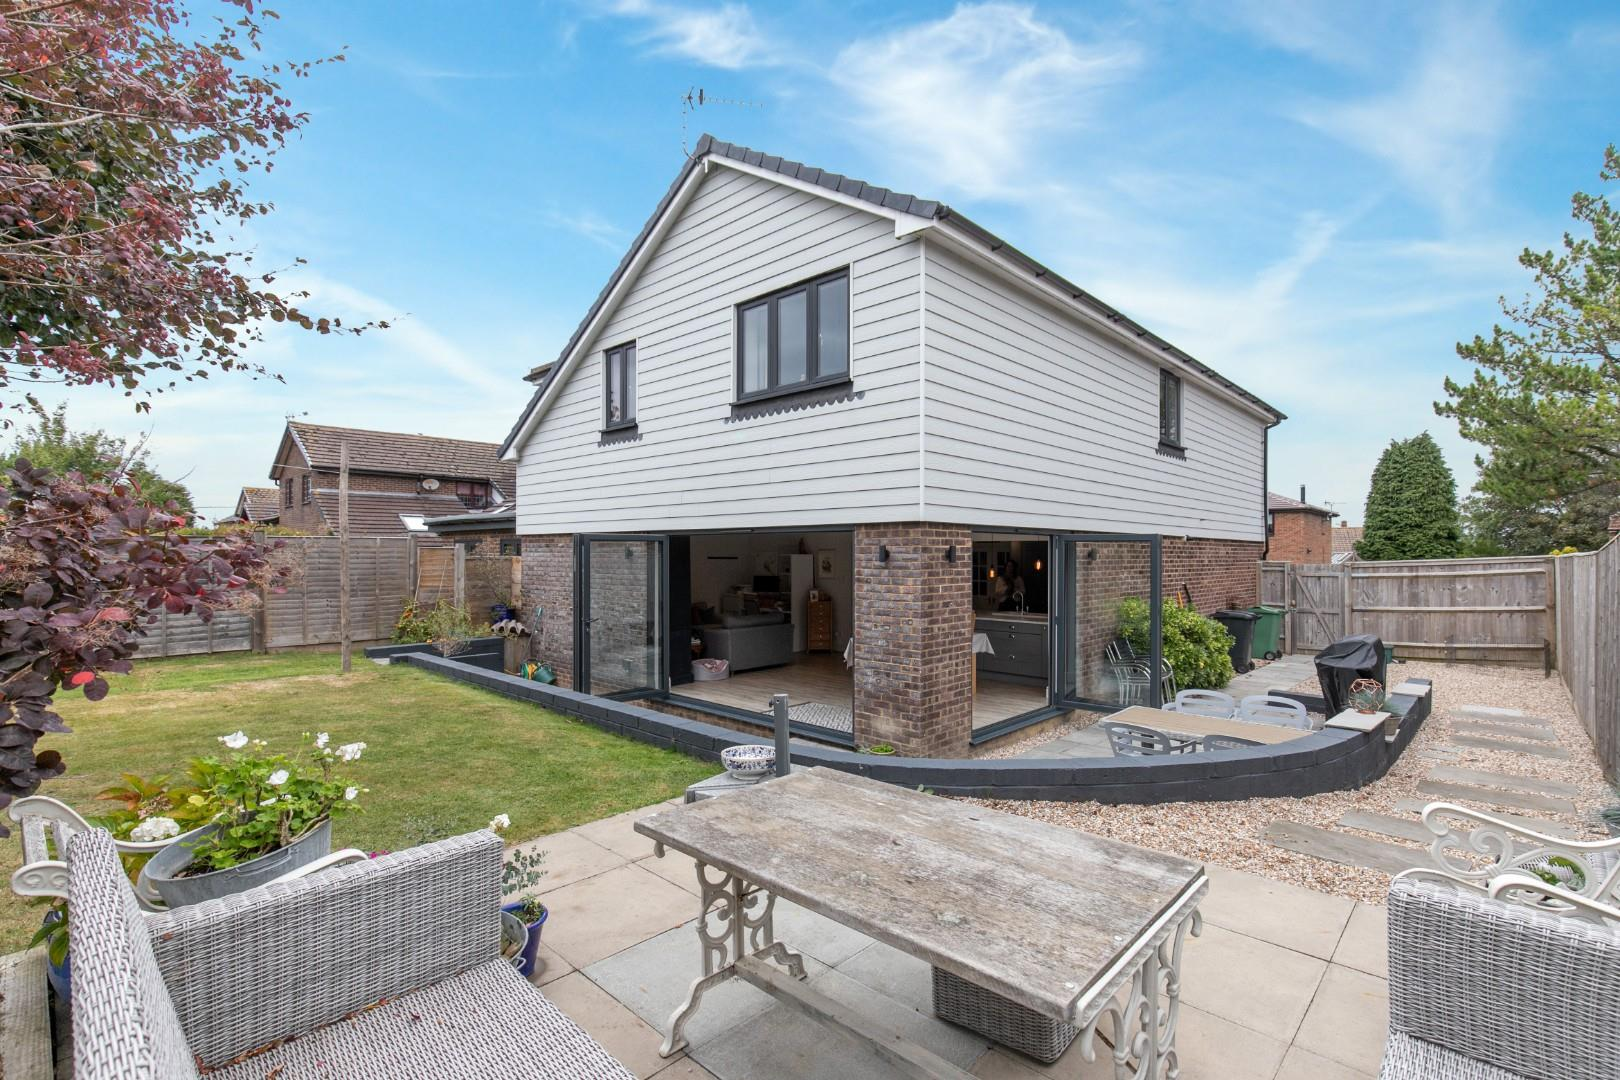 5 bed detached house for sale in The Hawthornes, Rye - Property Image 1